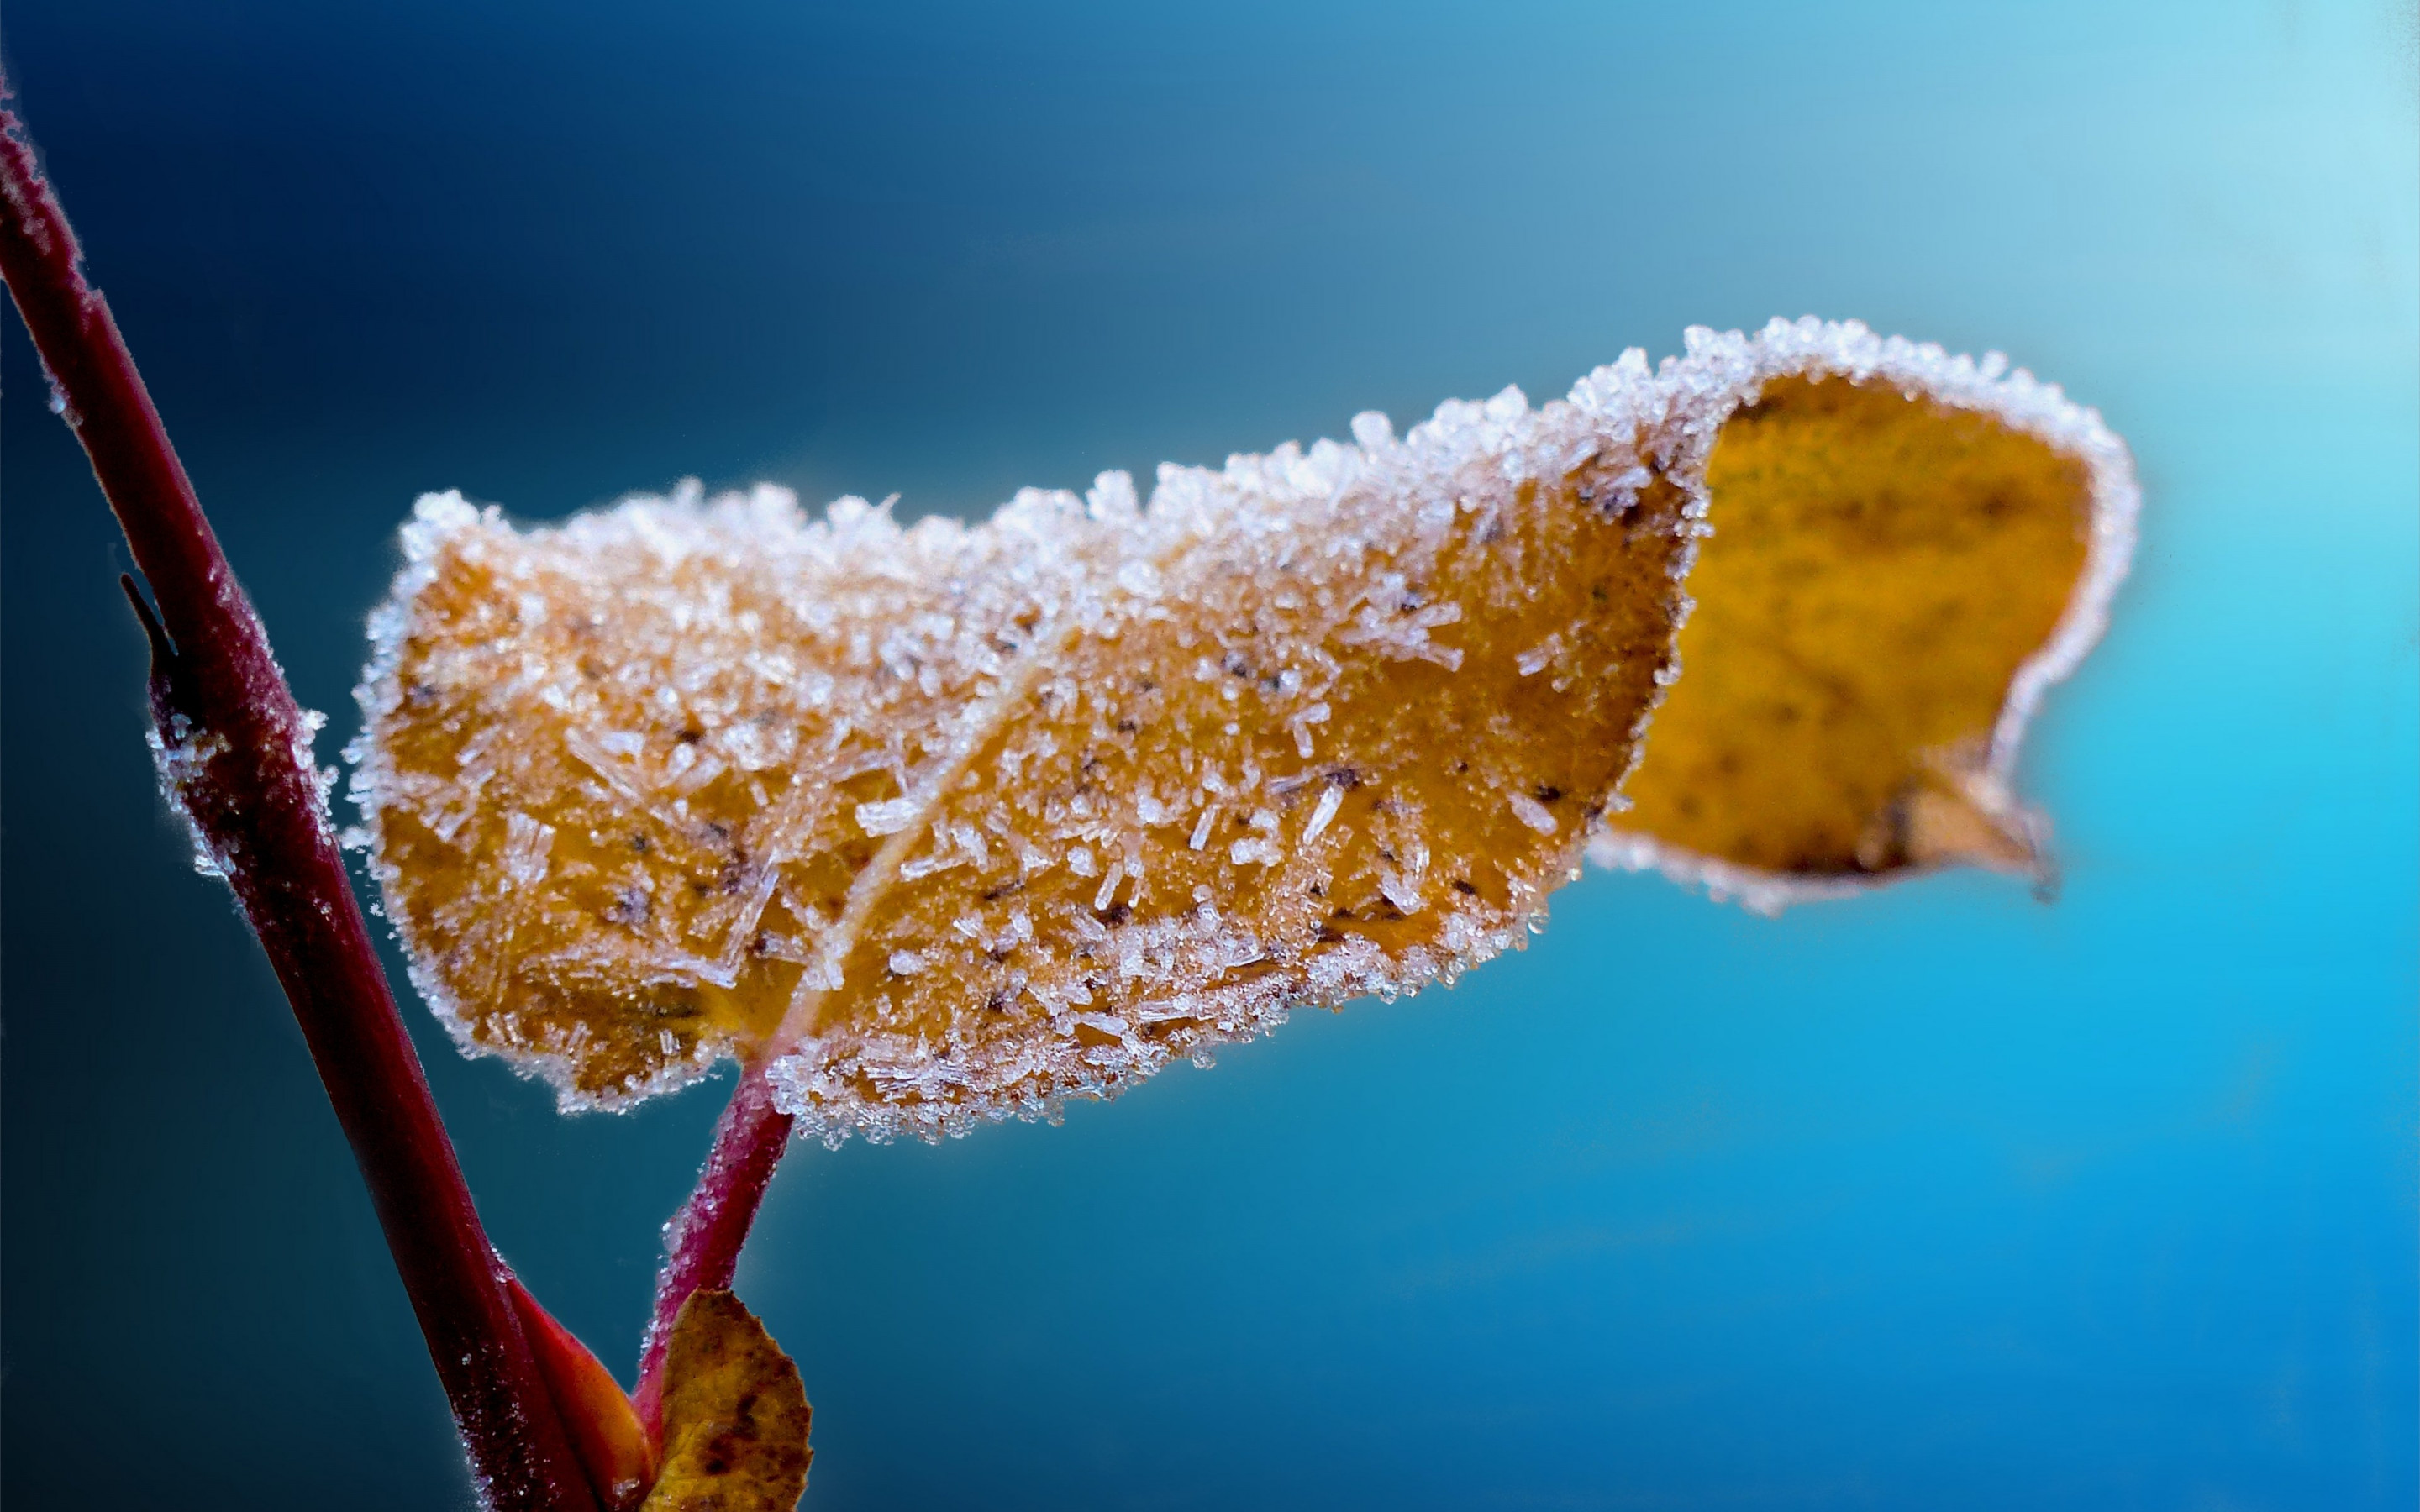 Frosted leaf | 2880x1800 wallpaper